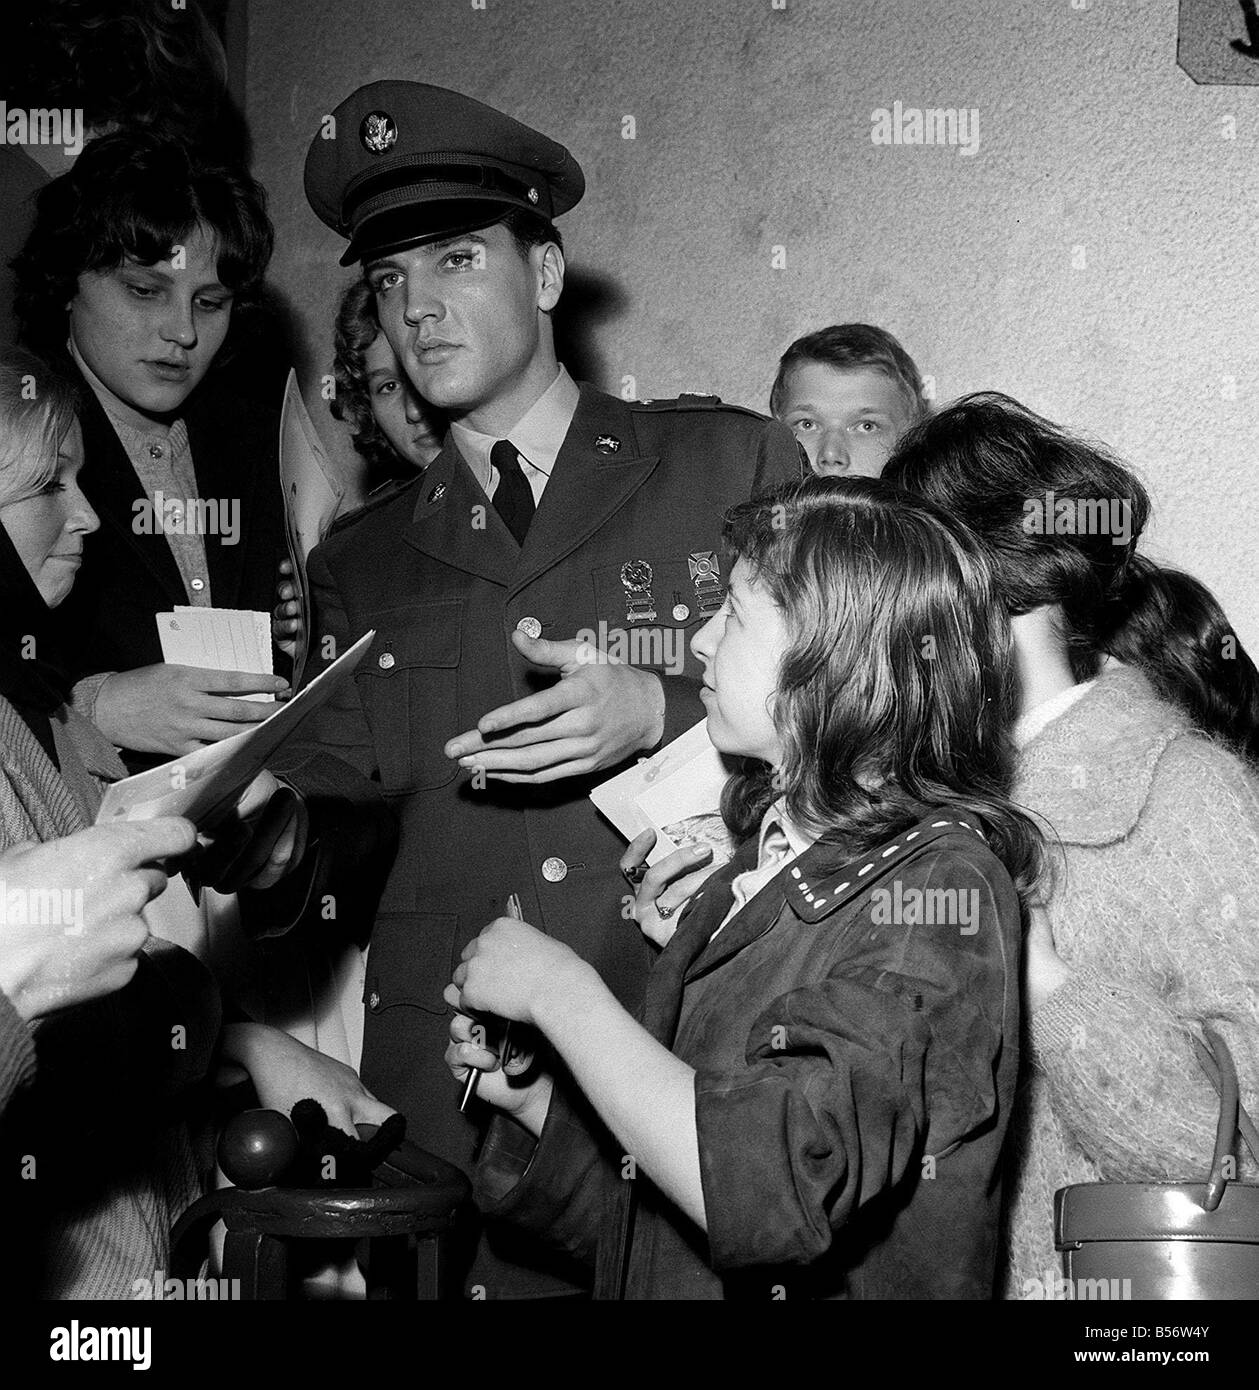 Elvis Presley signs autographs at press conference Germany March 1960 - Stock Image